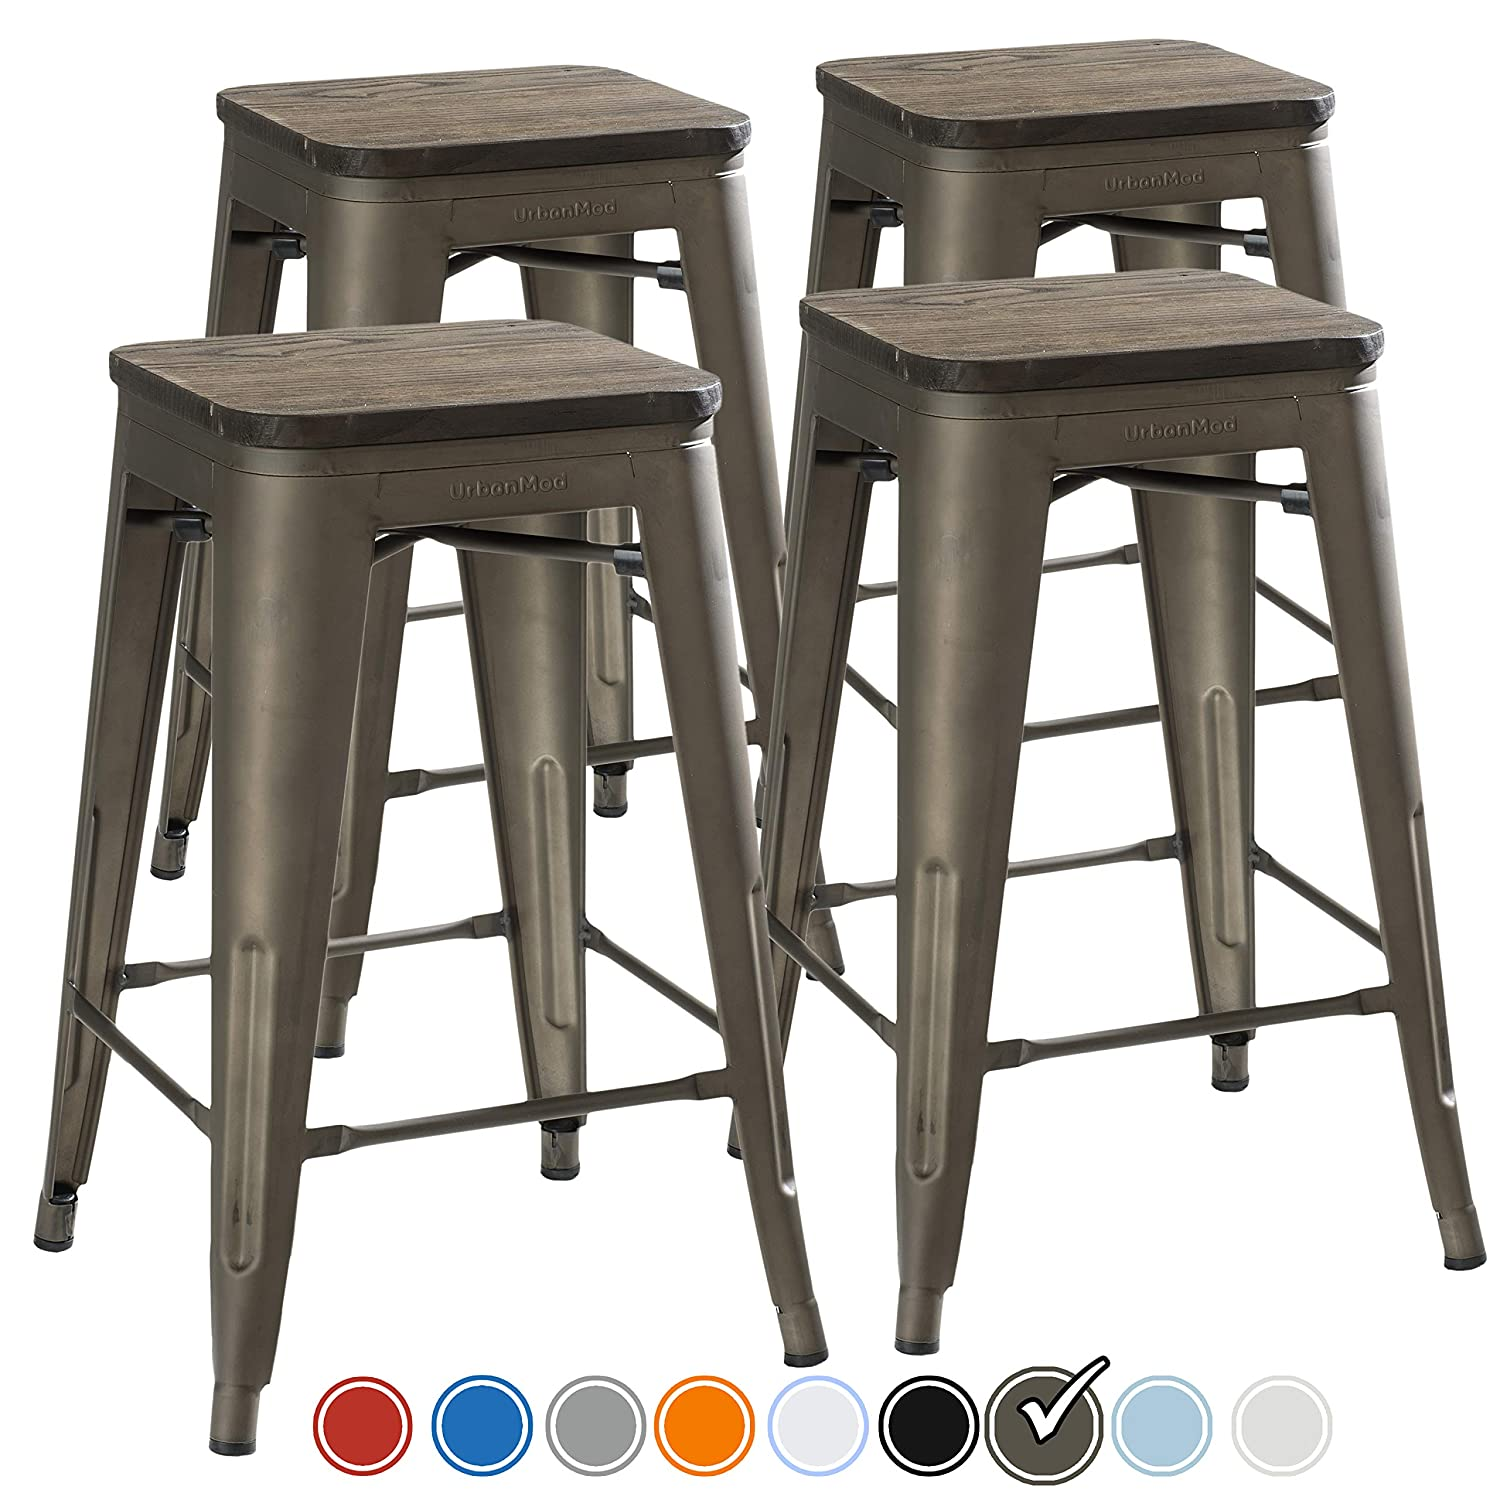 Groovy Urbanmod 24 Inch Bar Stools For Kitchen Counter Height Indoor Outdoor Metal Rustic Gunmetal Wooden Seat Pdpeps Interior Chair Design Pdpepsorg